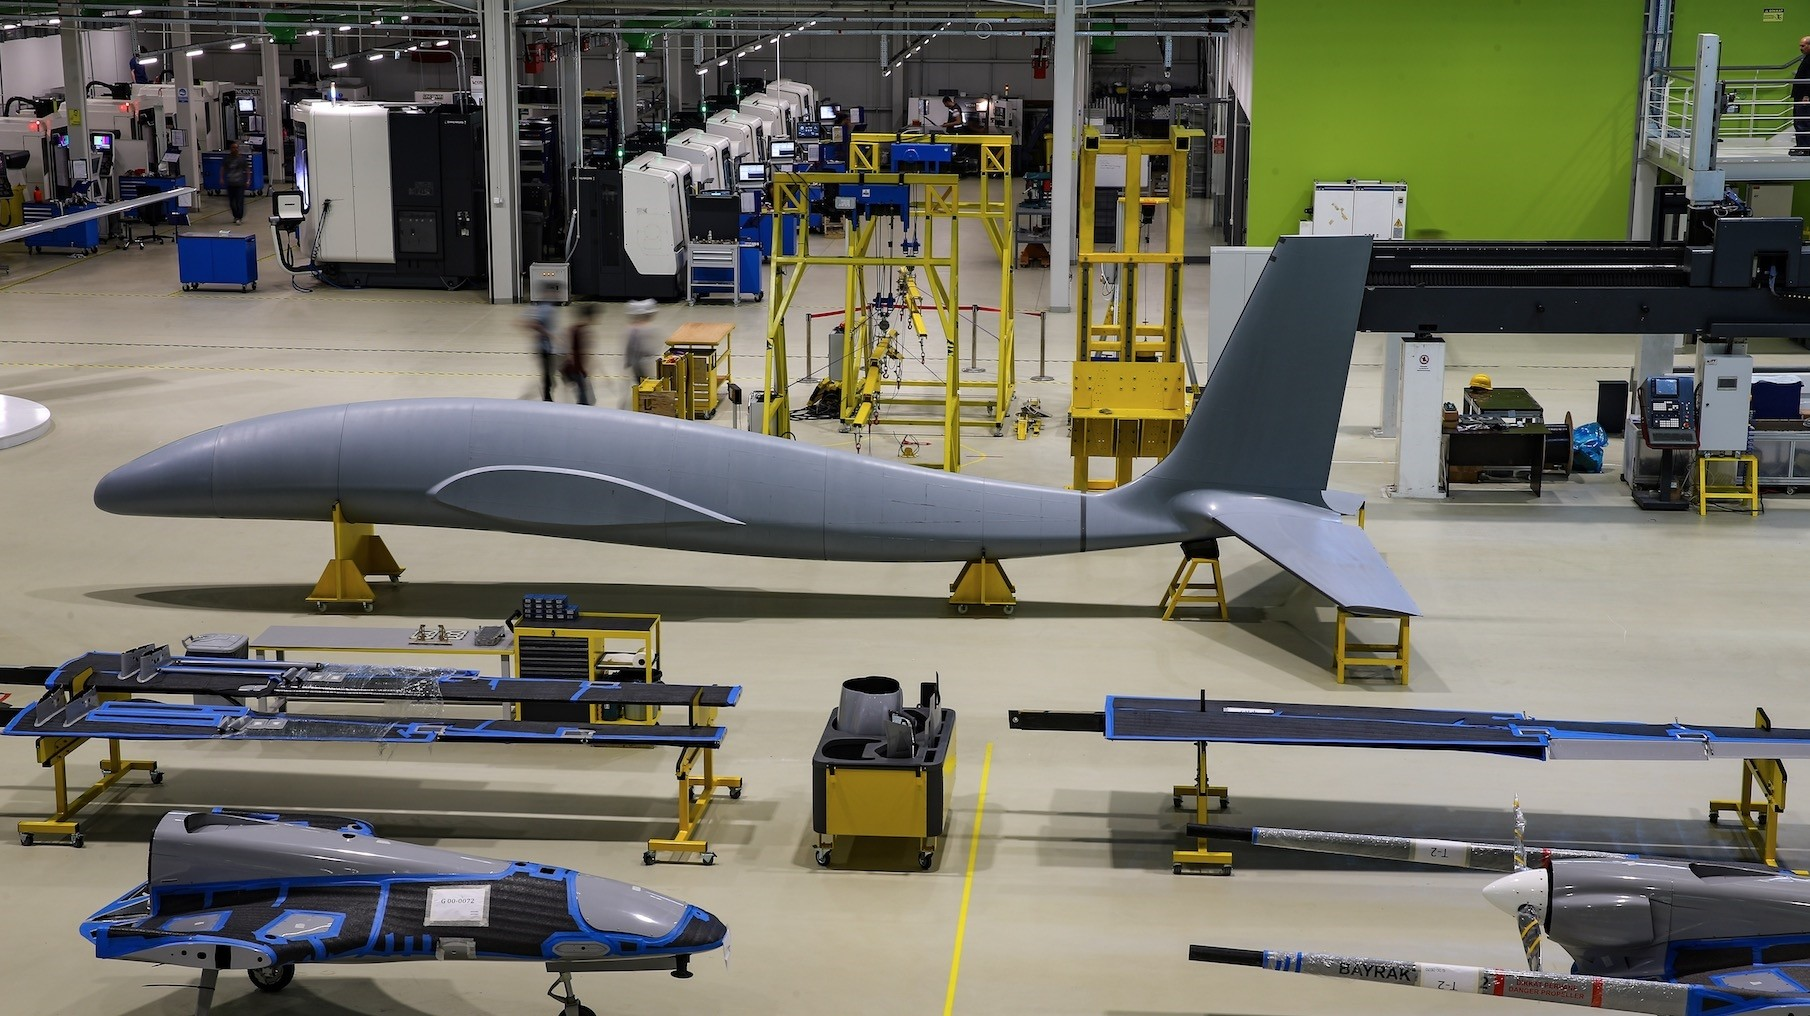 Baykar Makinau2019s latest twin-engine armed drone Aku0131ncu0131 will run test flights next year and is expected to offically start serving Turkish security forces in 2020.